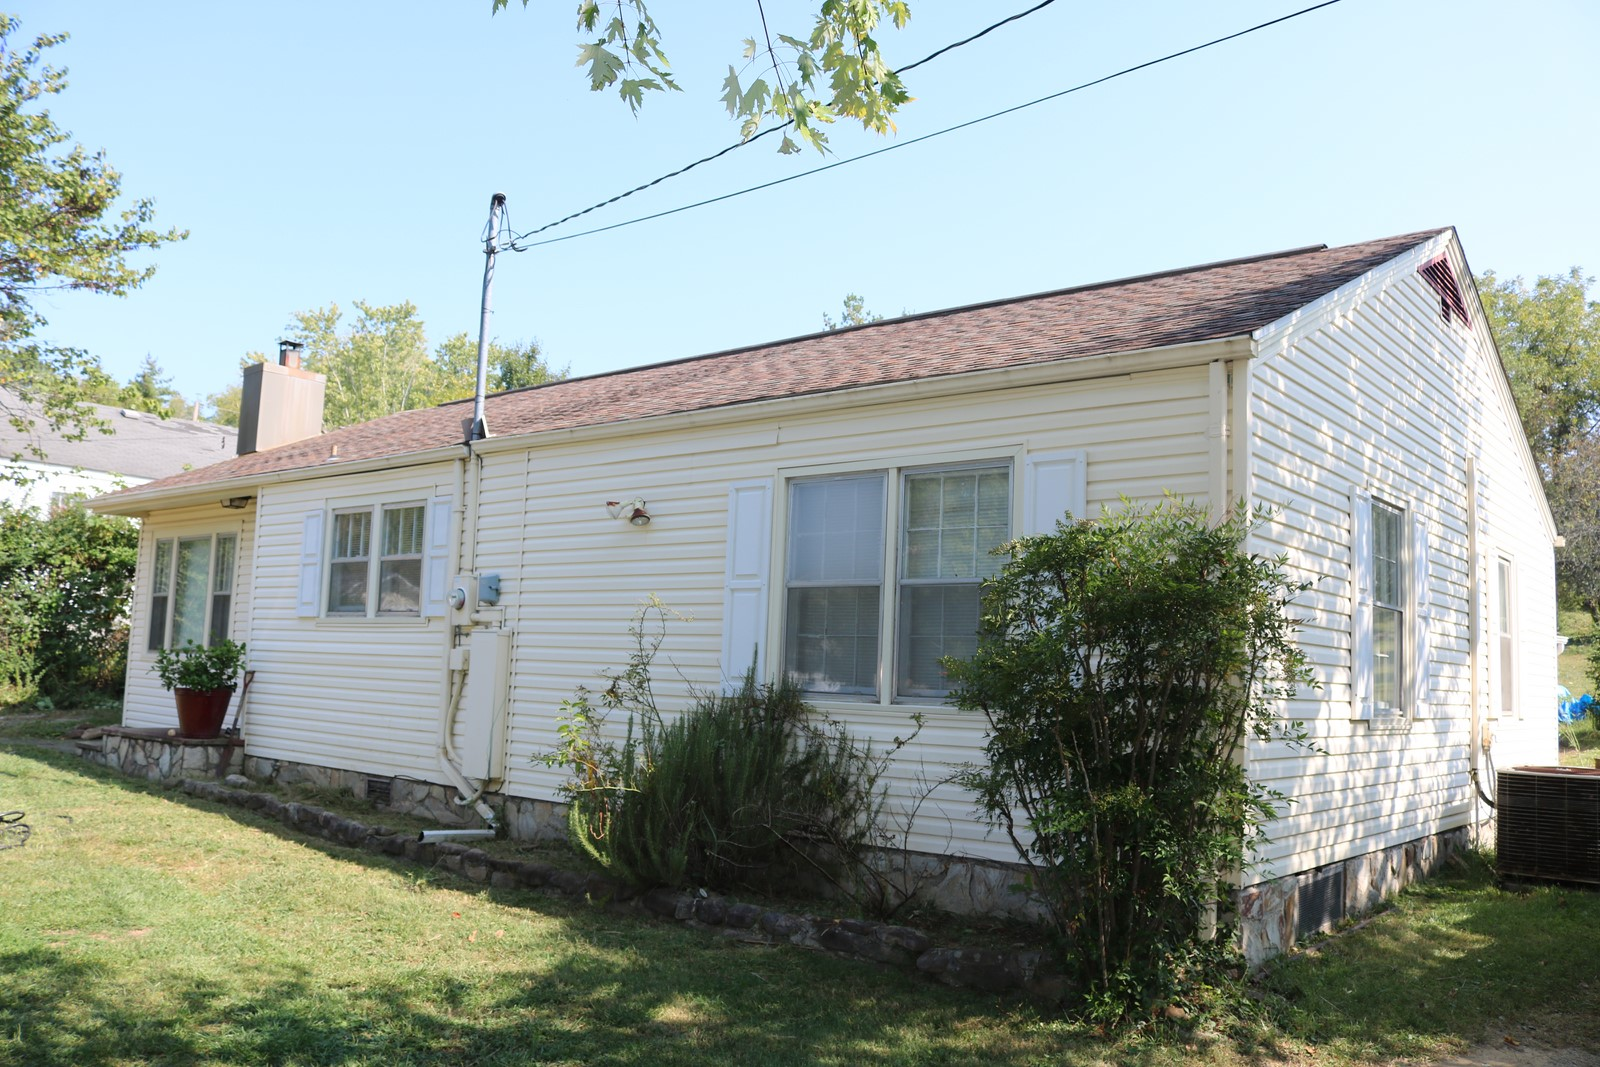 Charming 3 possible 4 bedroom 2 bath home on double lot in convenient location across from Hardins Park!